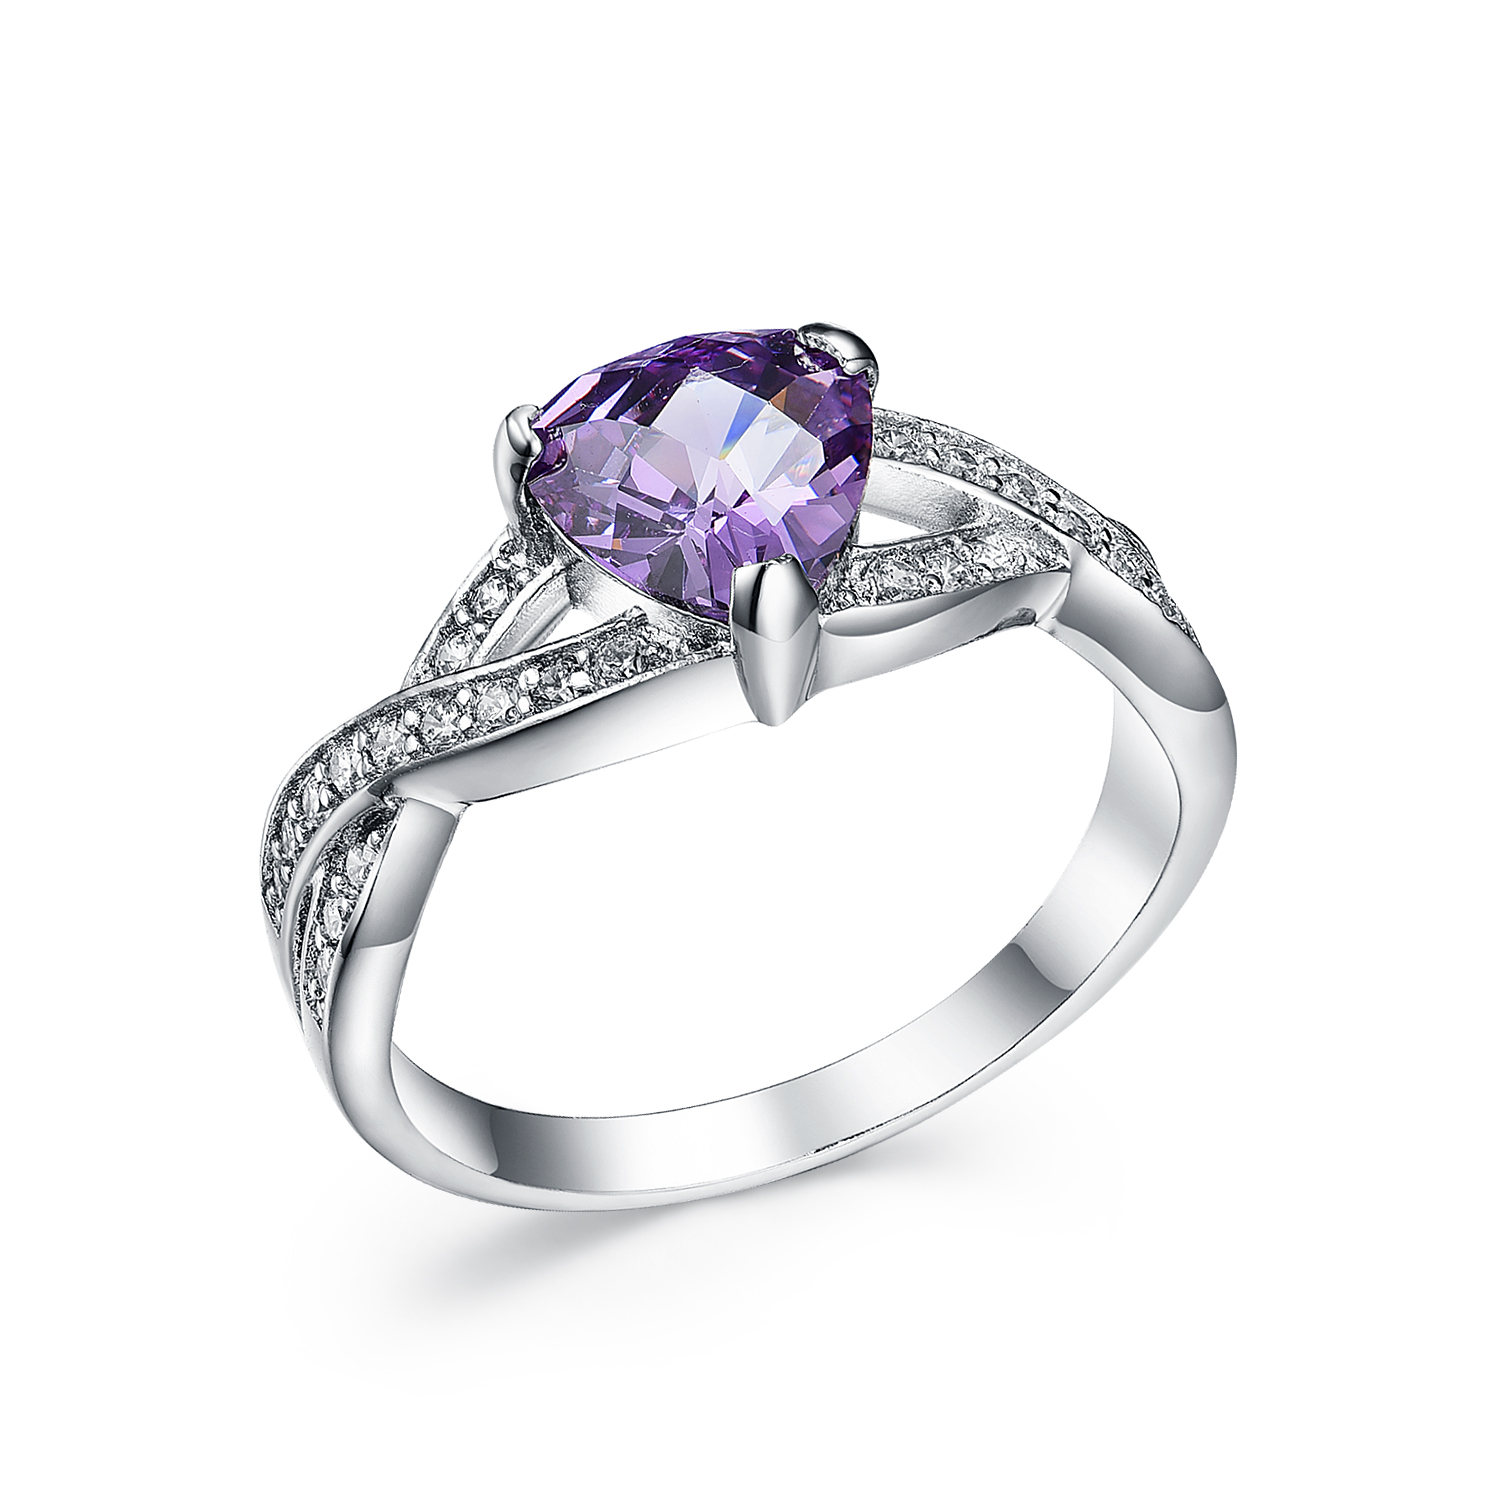 RI3134 Purple Triangle Ring with Wax setting CZ in Rhodium from China Top Jewelry wholesaler